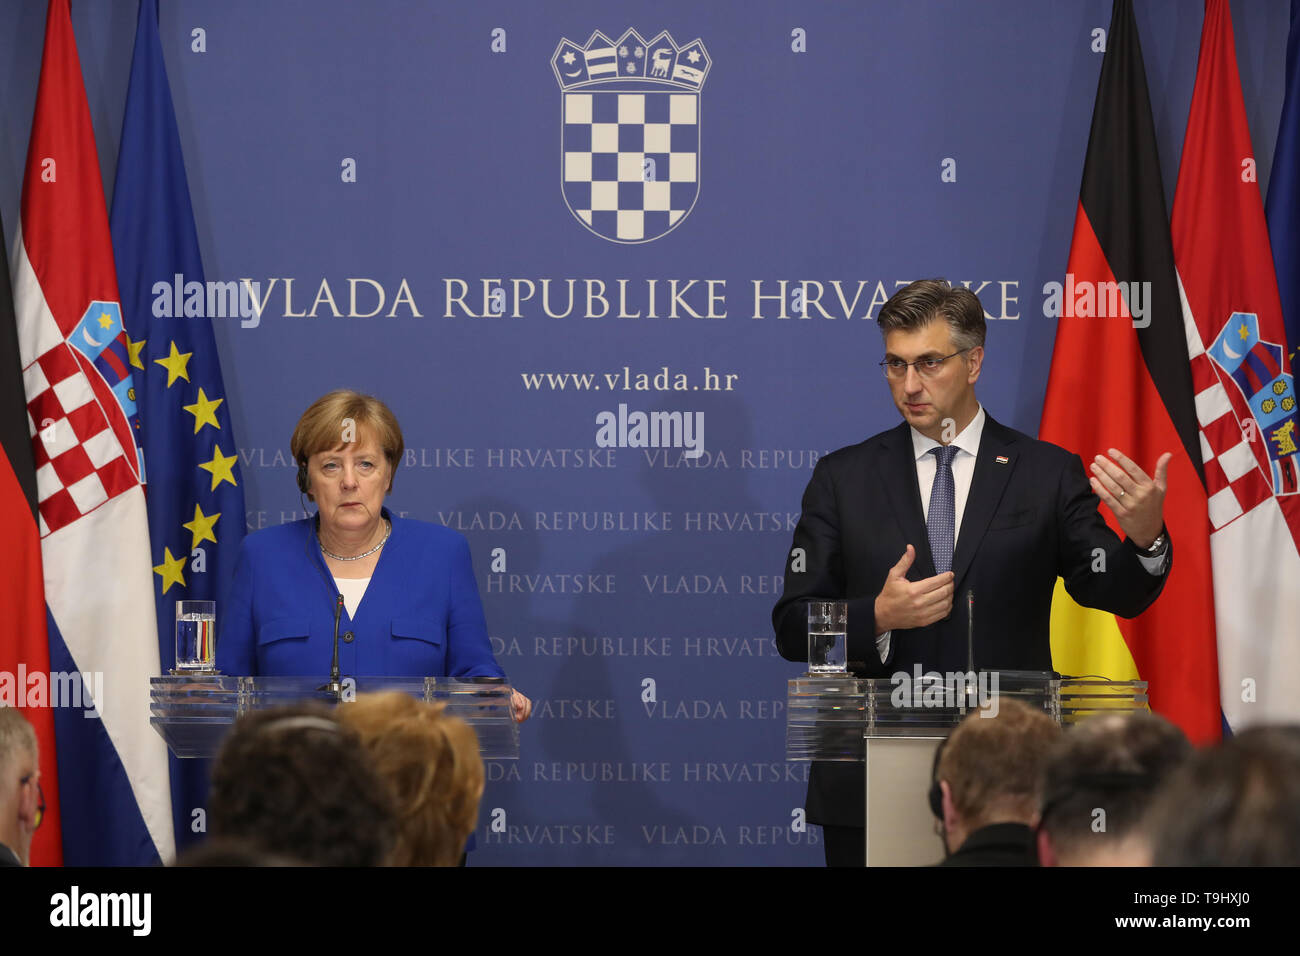 Zagreb, Croatia. 18th May, 2019. Croatian Prime Minister Andrej Plenkovic (R) and visiting German Chancellor Angela Merkel attend a press conference in Zagreb, Croatia, May 18, 2019. Croatia is on the right path to entry into the Schengen area and has the support of Germany, German Chancellor Angela Merkel said here on Saturday after a formal part of the talks with Croatian Prime Minister Andrej Plenkovic. Credit: Robert Anic/Xinhua/Alamy Live News - Stock Image